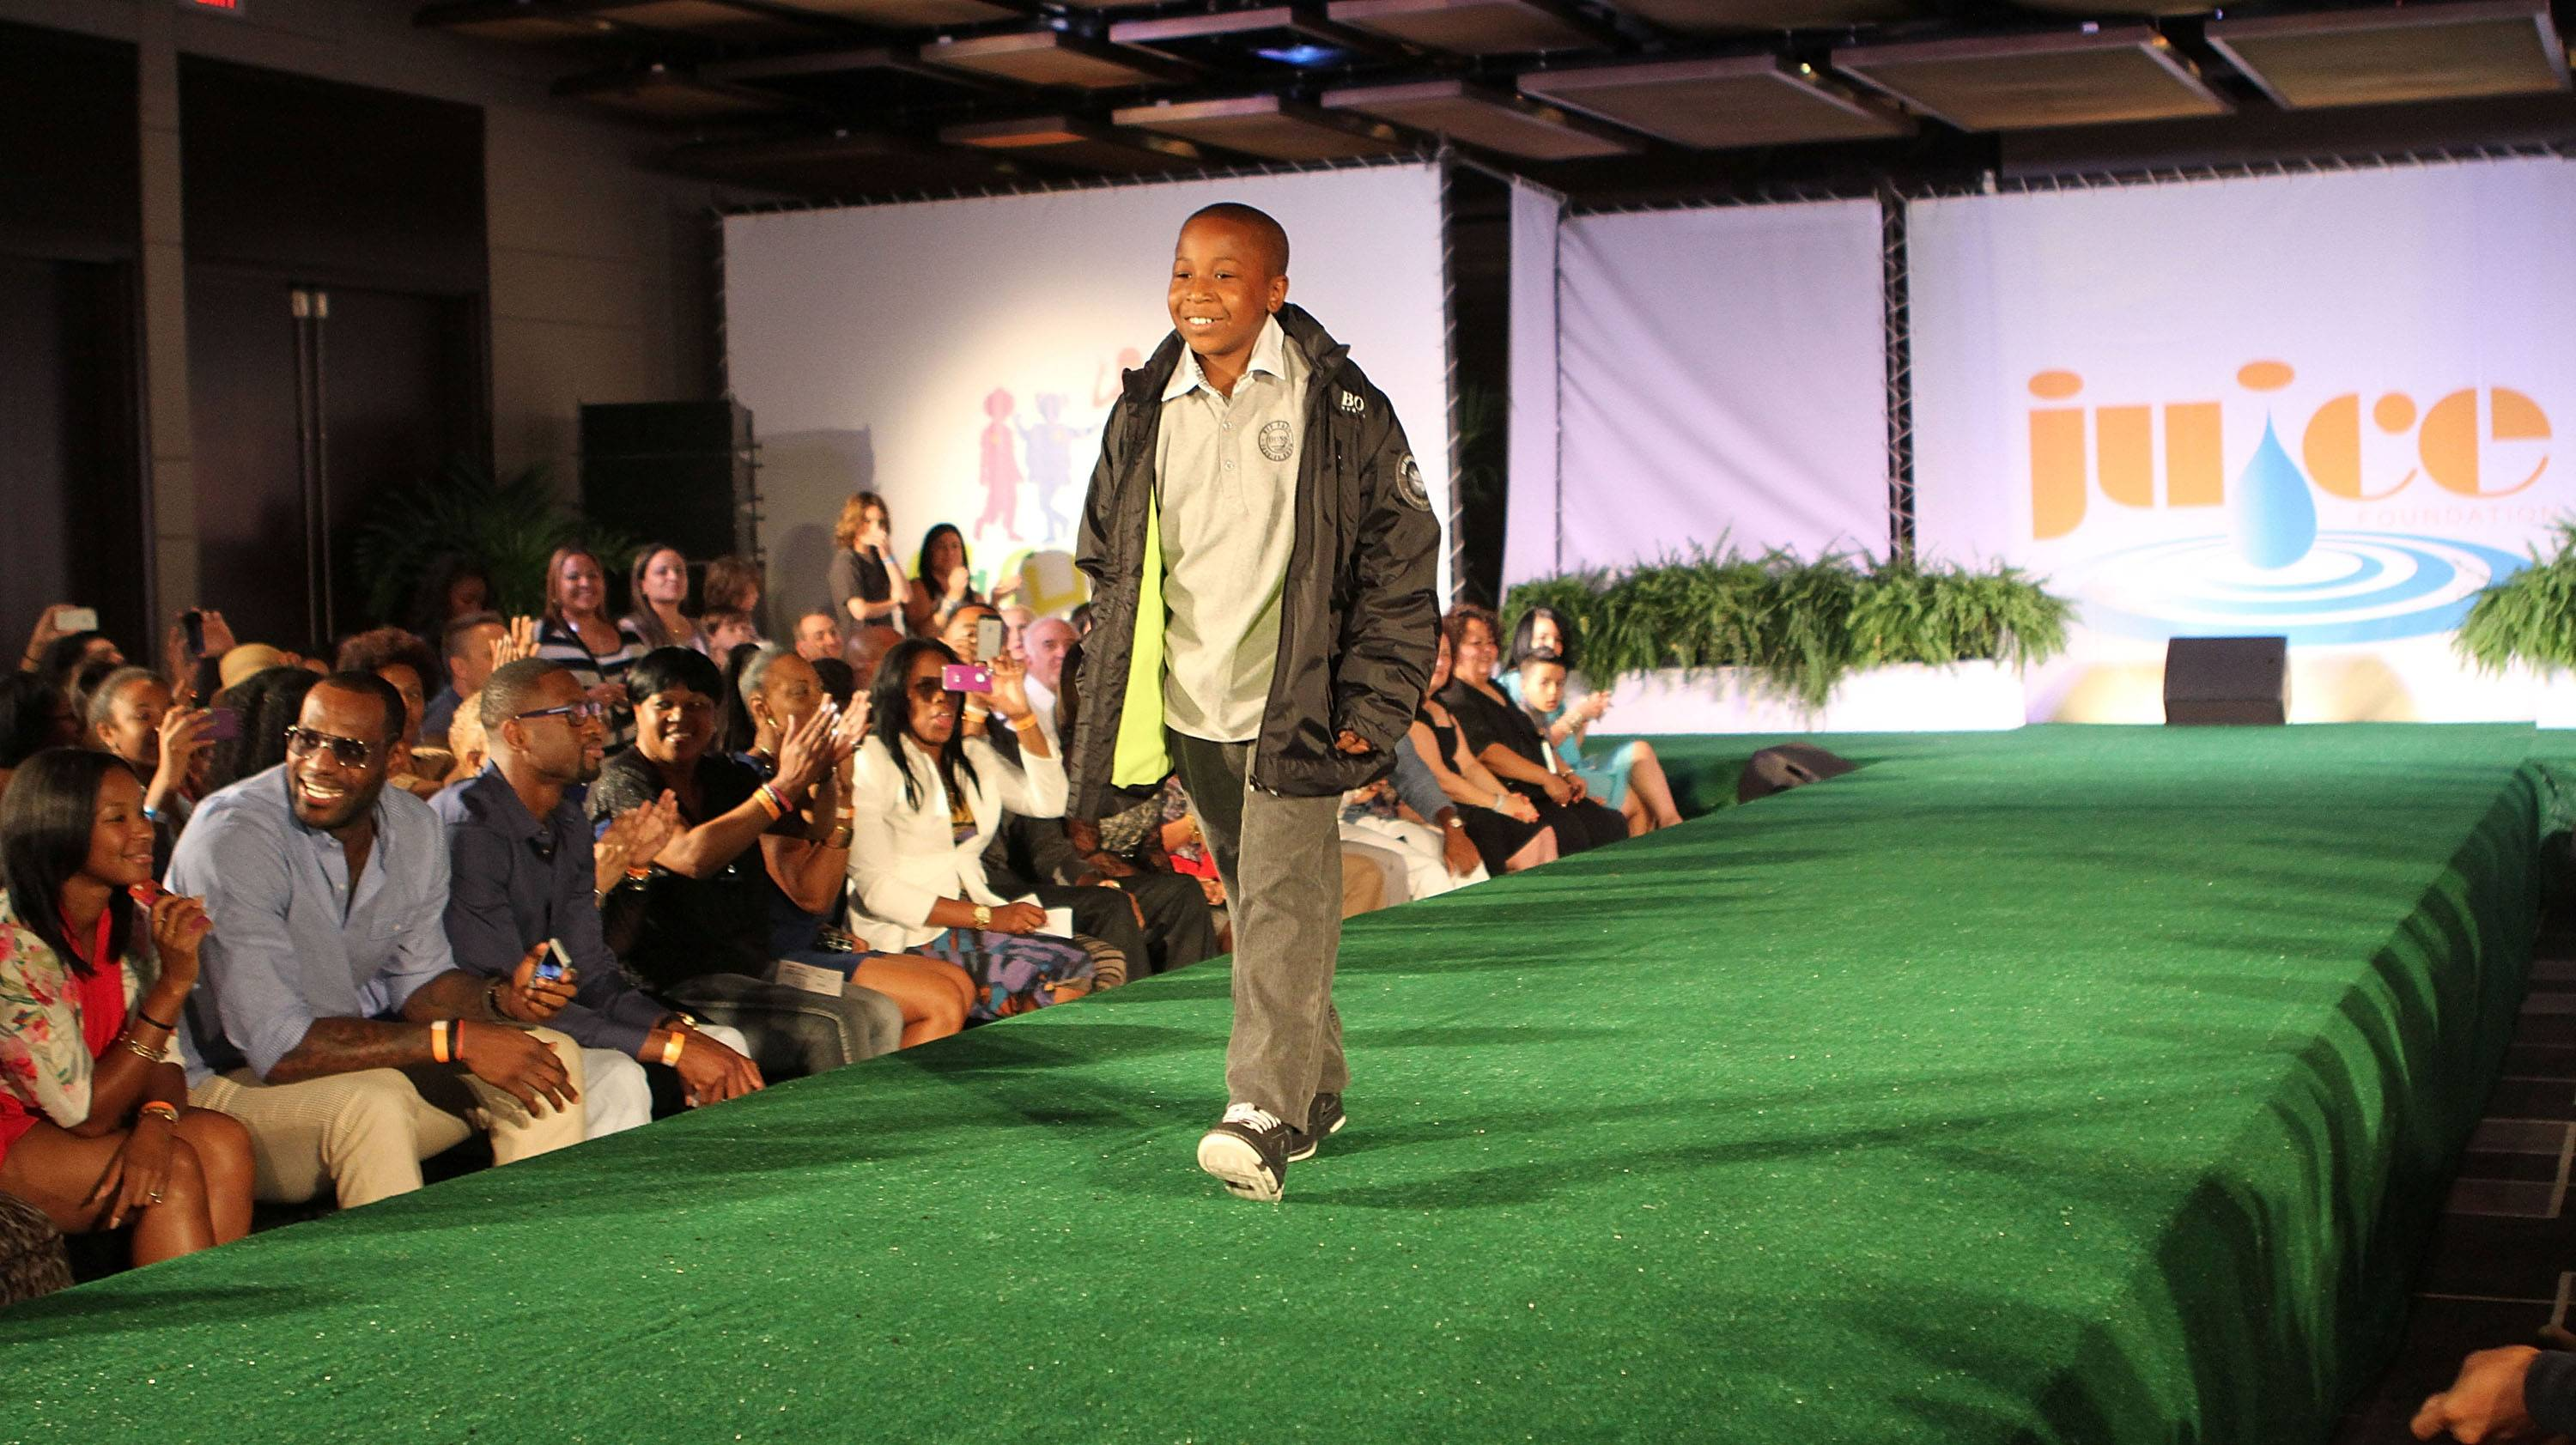 The Juice Foundation Reception And Fashion Show At W South Beach